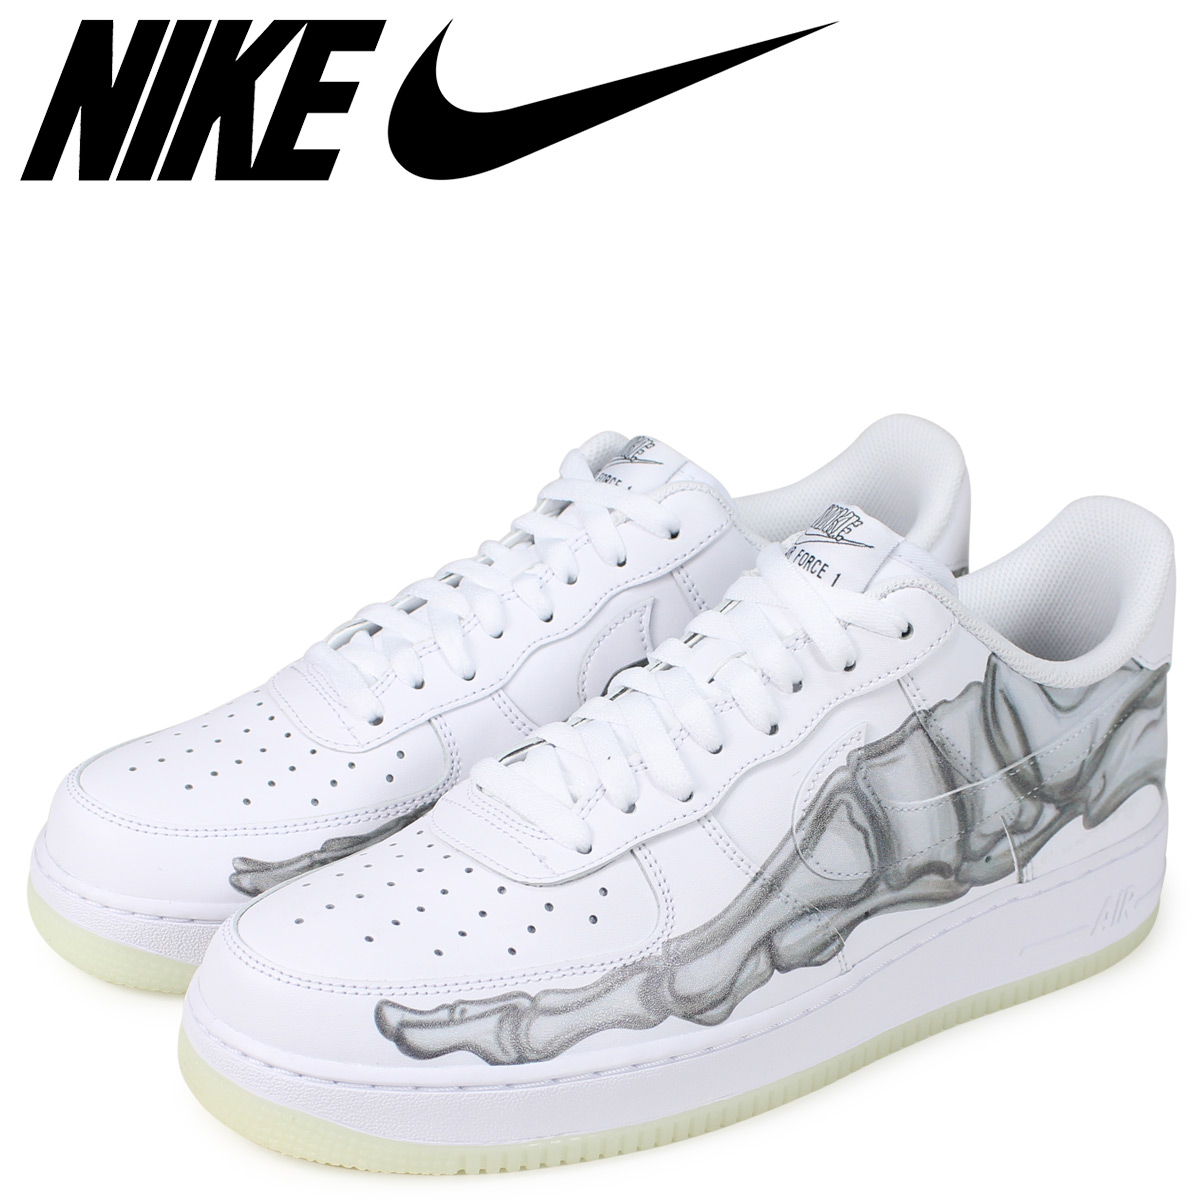 pretty nice classic shoes clearance prices NIKE Nike air force 1 sneakers men AIR FORCE 1 SKELETON QS white white  BQ7541-100